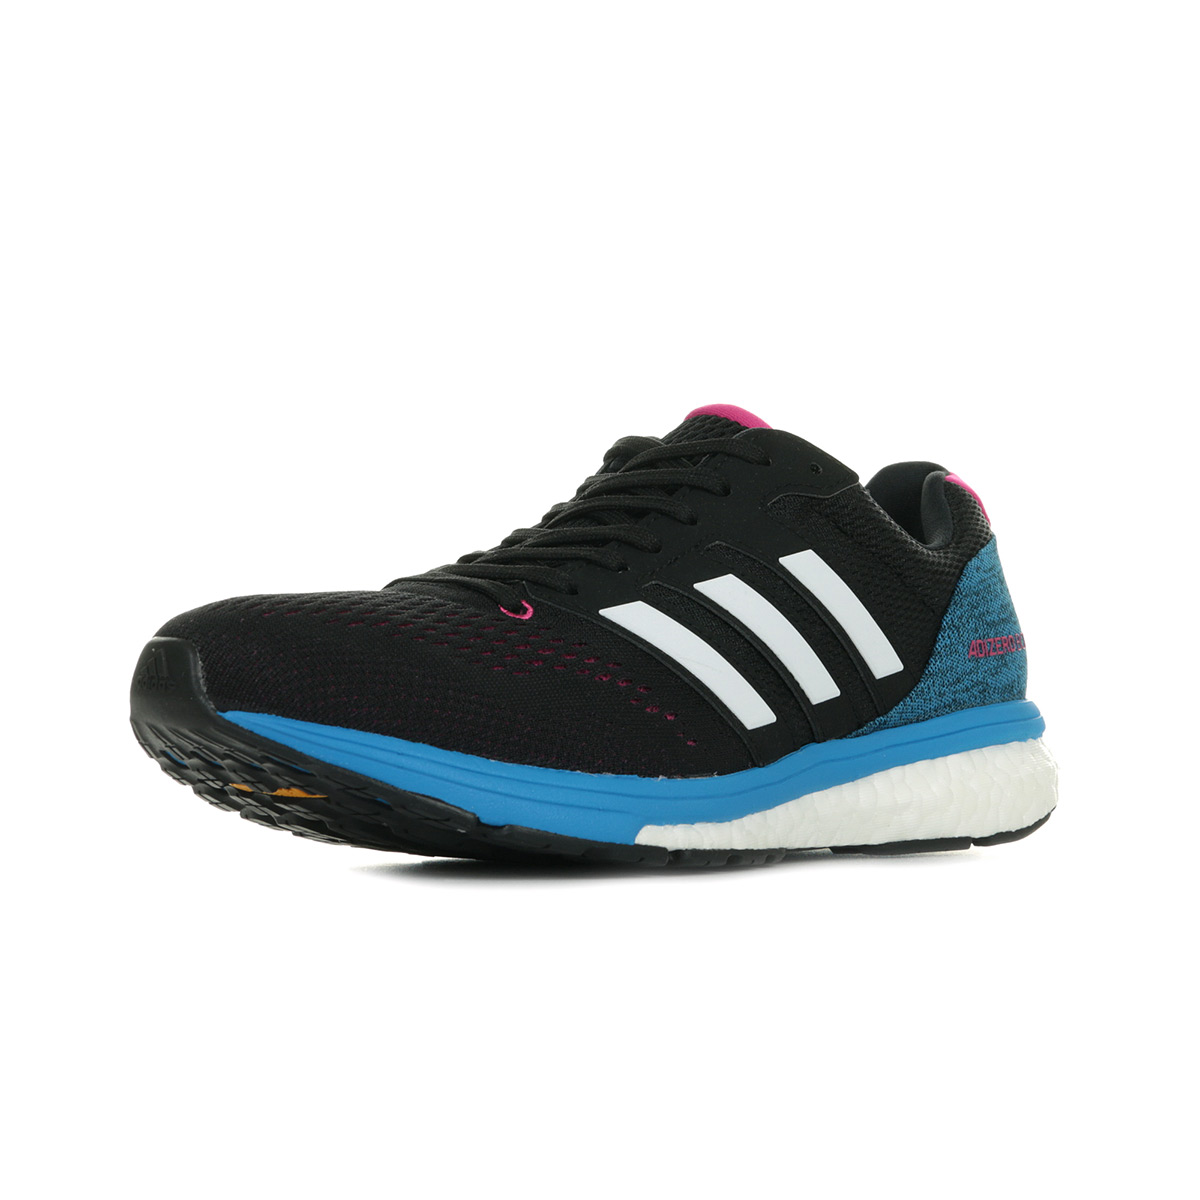 adidas Performance Adizero Boston 7 Wn's BB6501, Running femme